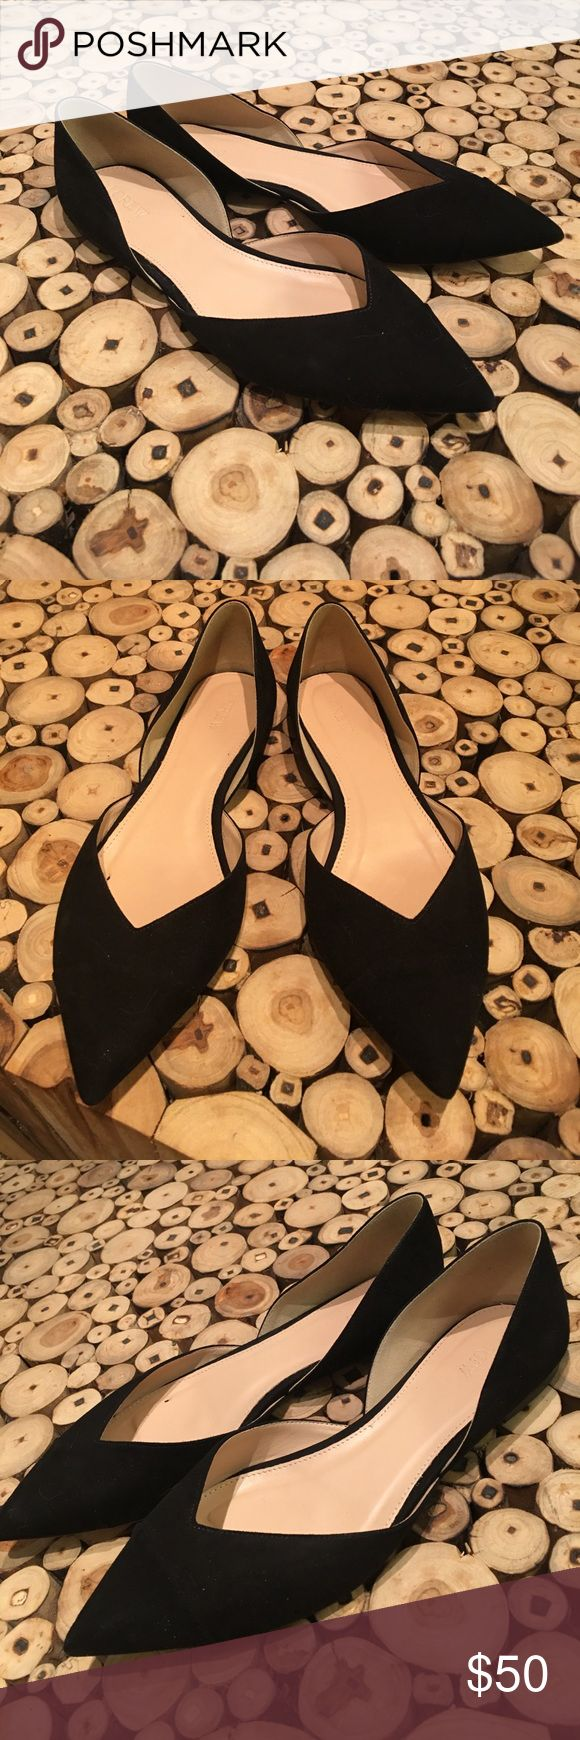 J Crew Suede Tuxedo D'orsay Flats sz10 Brand-new only tried on indoors - understated stunning flattering lines J. Crew Shoes Flats & Loafers